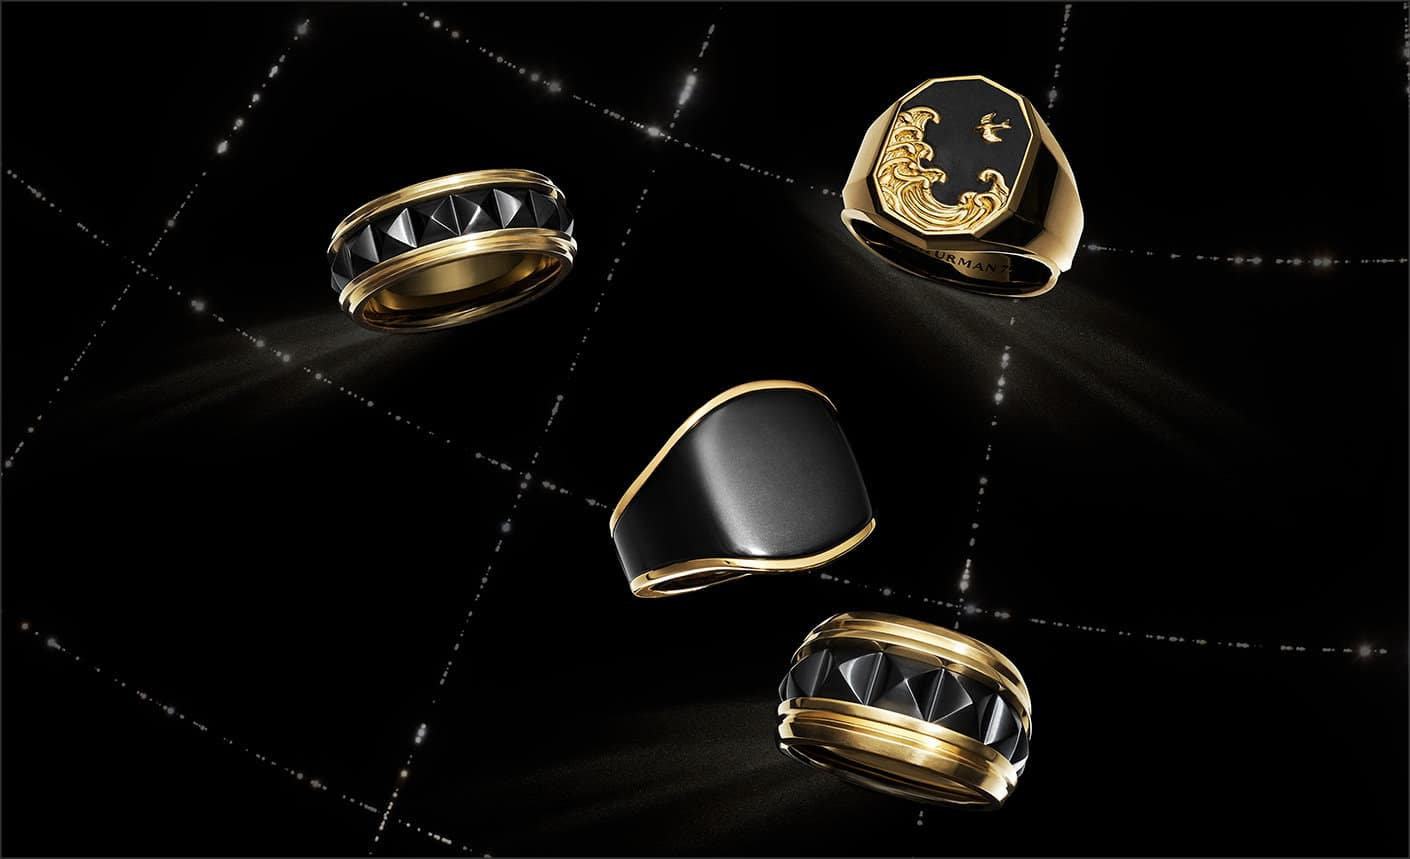 A color photo shows four David Yurman men's rings floating in a night sky with white latitude and longitude lines. The jewelry is crafted from 18K yellow gold with or without forged carbon or black titanium.